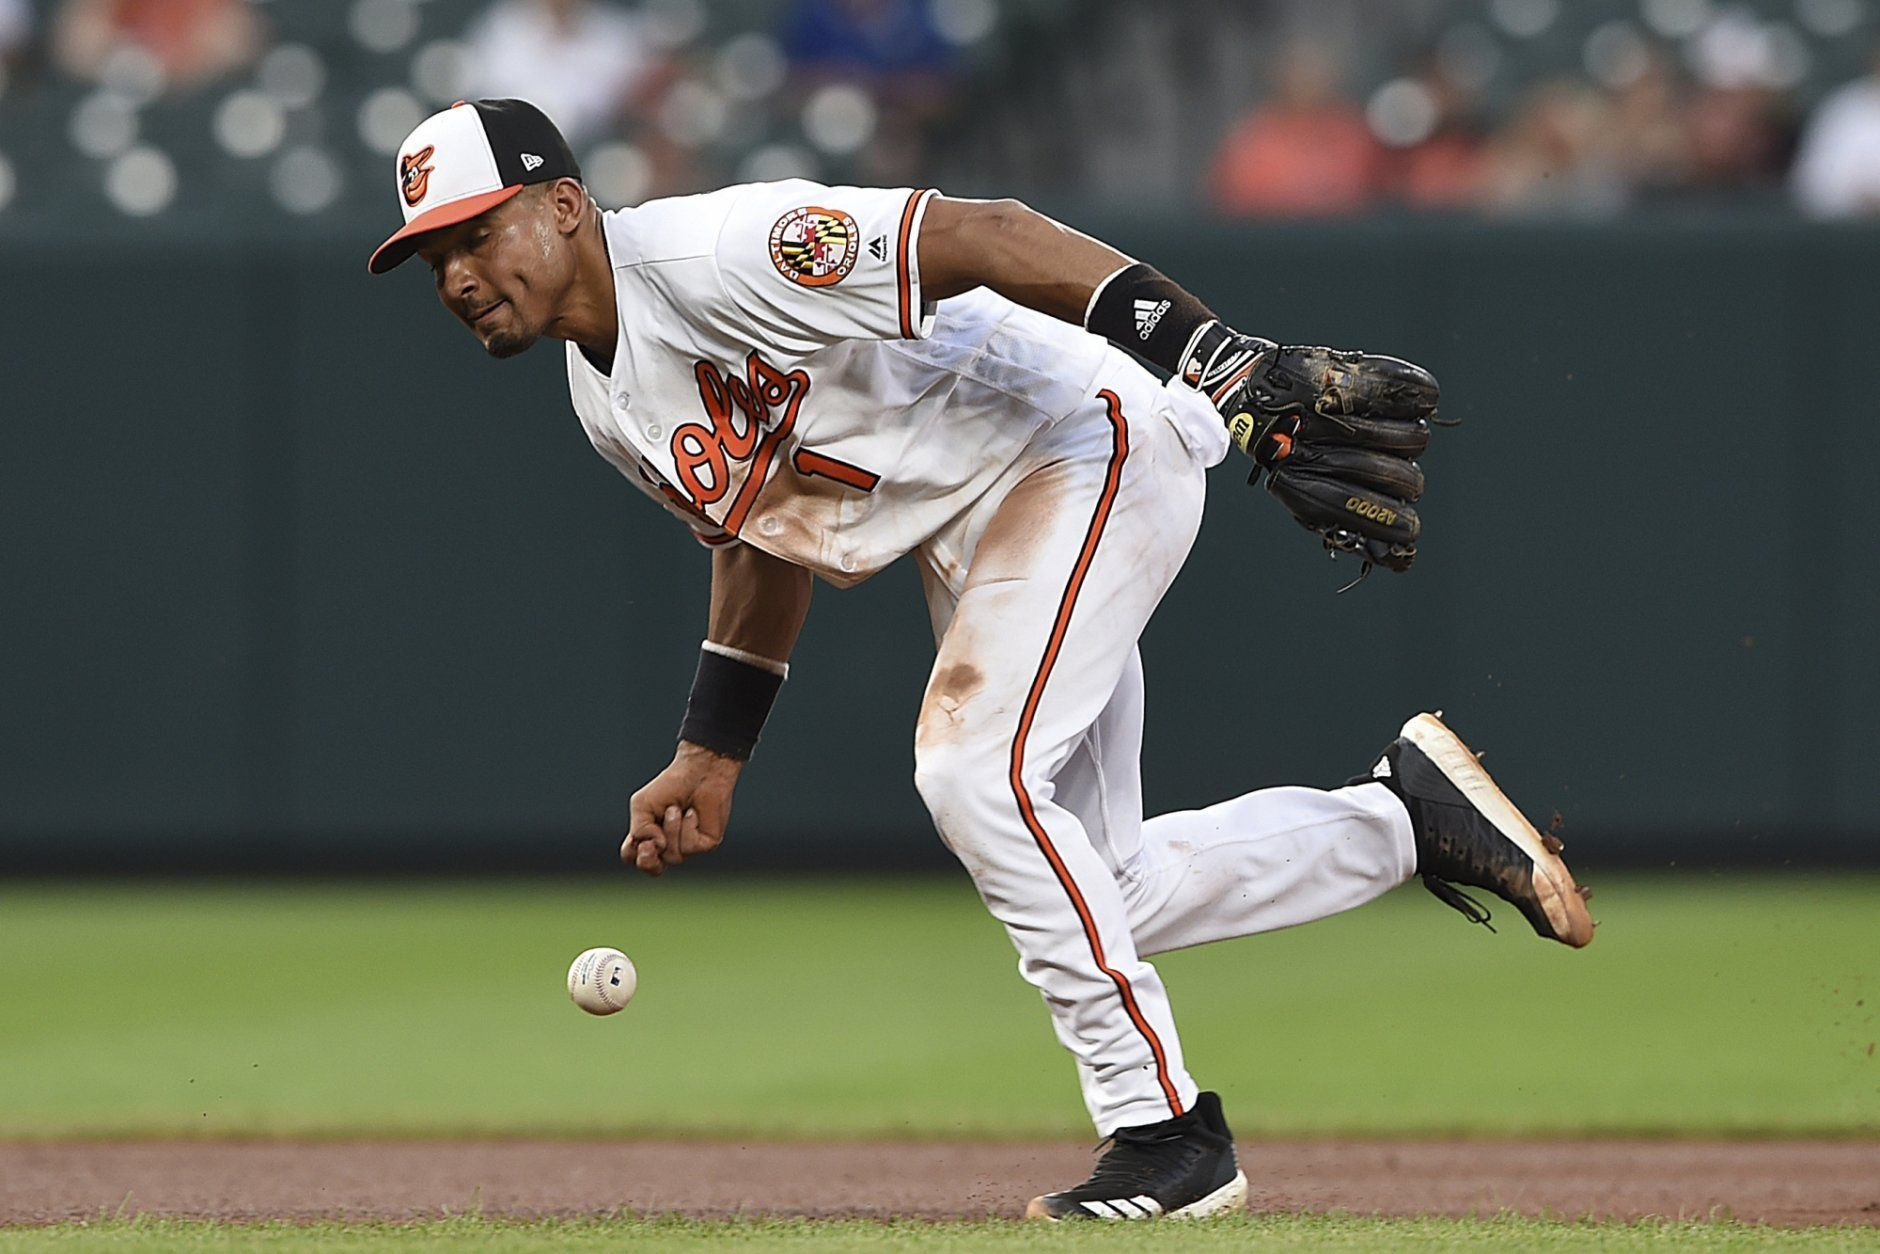 Baltimore Orioles shortstop Richie Martin is unable to hold on to a slow grounder hit by Detroit Tigers' Niko Goodrum during the fourth inning of a baseball game Wednesday, May 29, 2019, in Baltimore. Goodrum earned a single on the play. (AP Photo/Gail Burton)